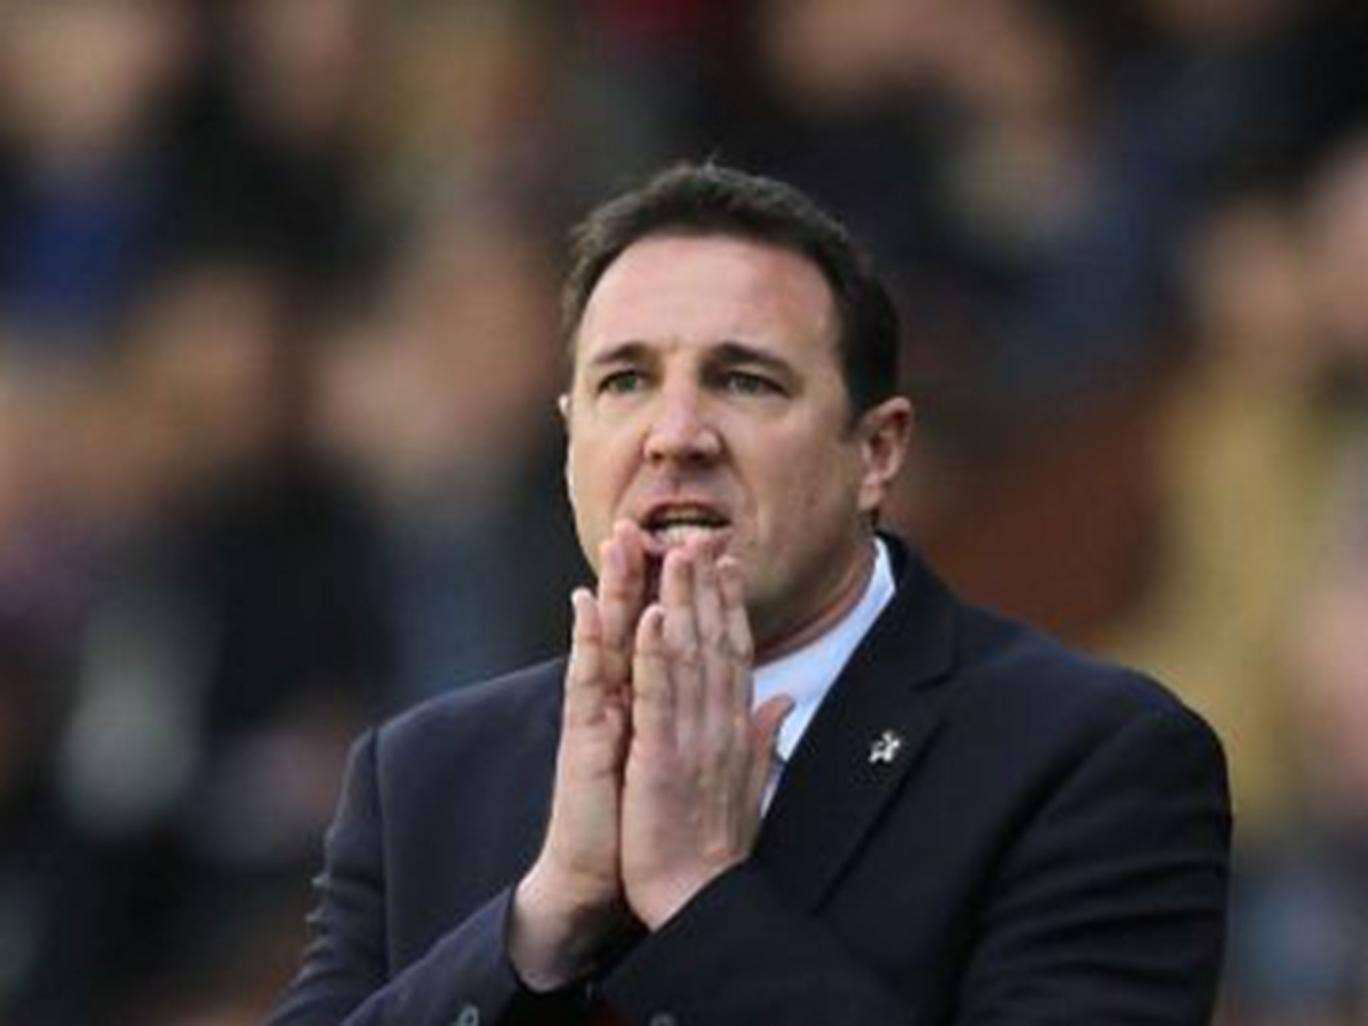 Cardiff City are pursuing what they consider to be a considerable overspend on player recruitment by former manager Malky Mackay